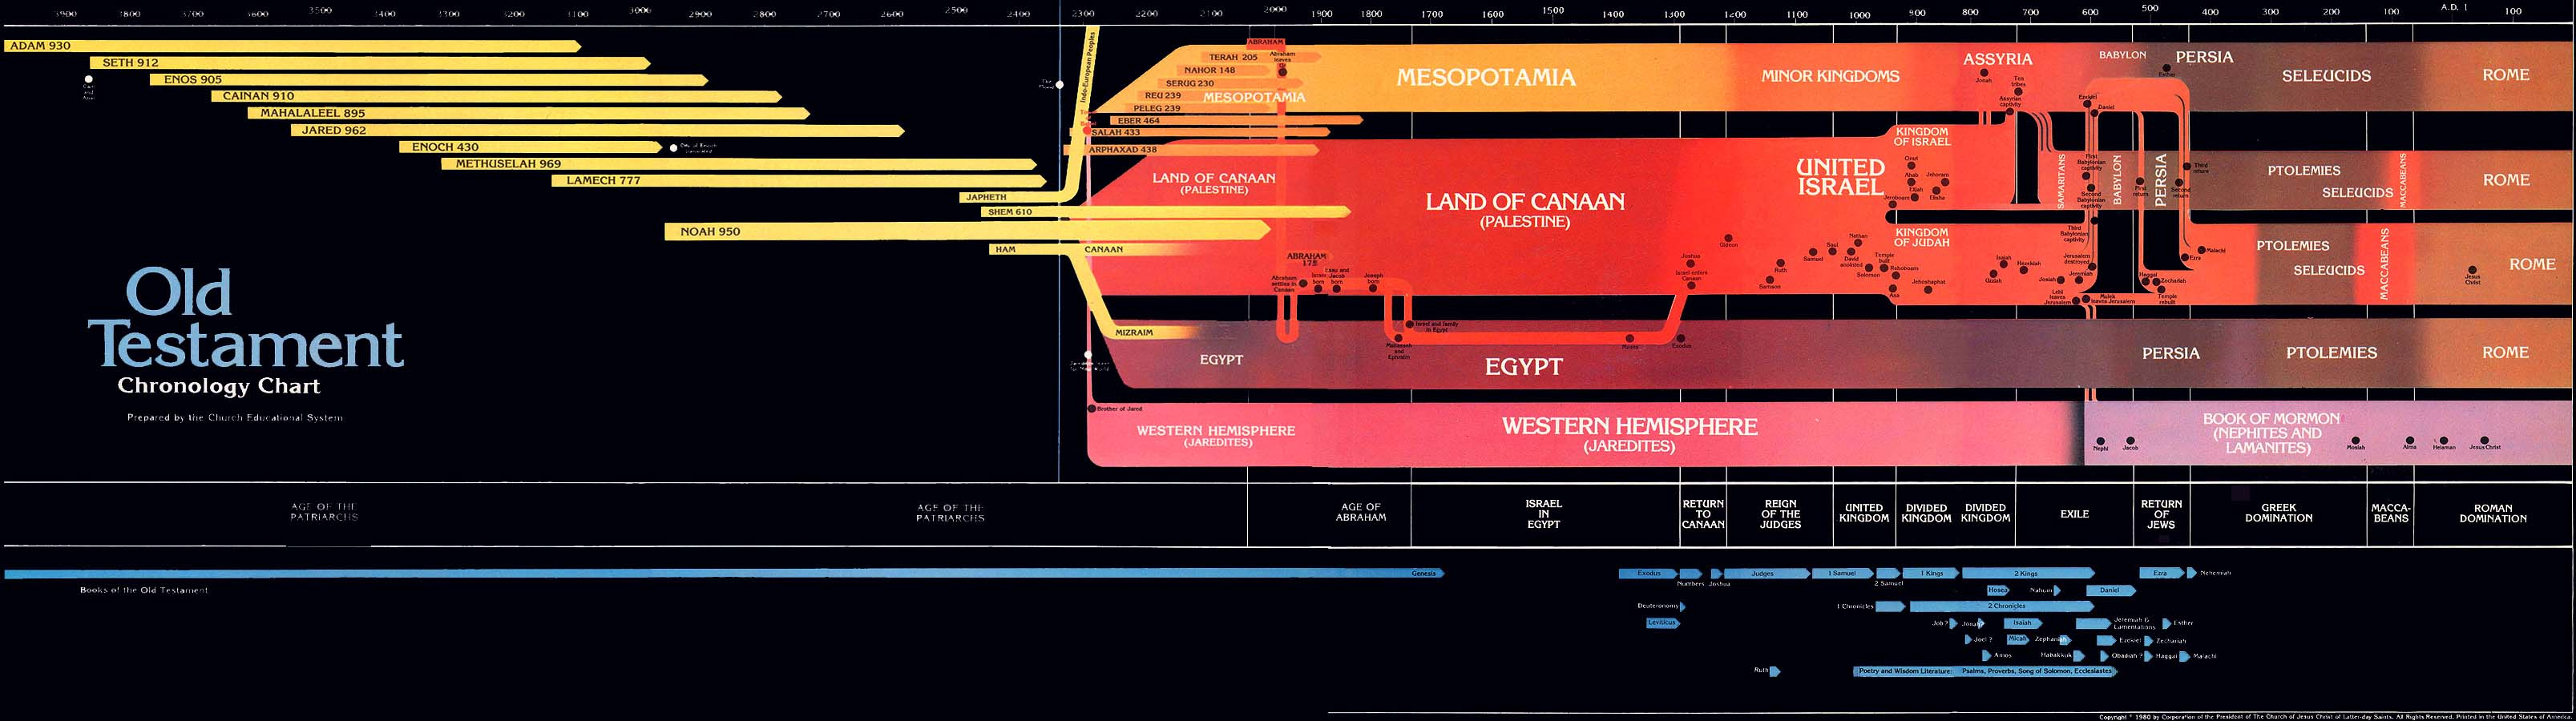 Old Testament Chronology Chart